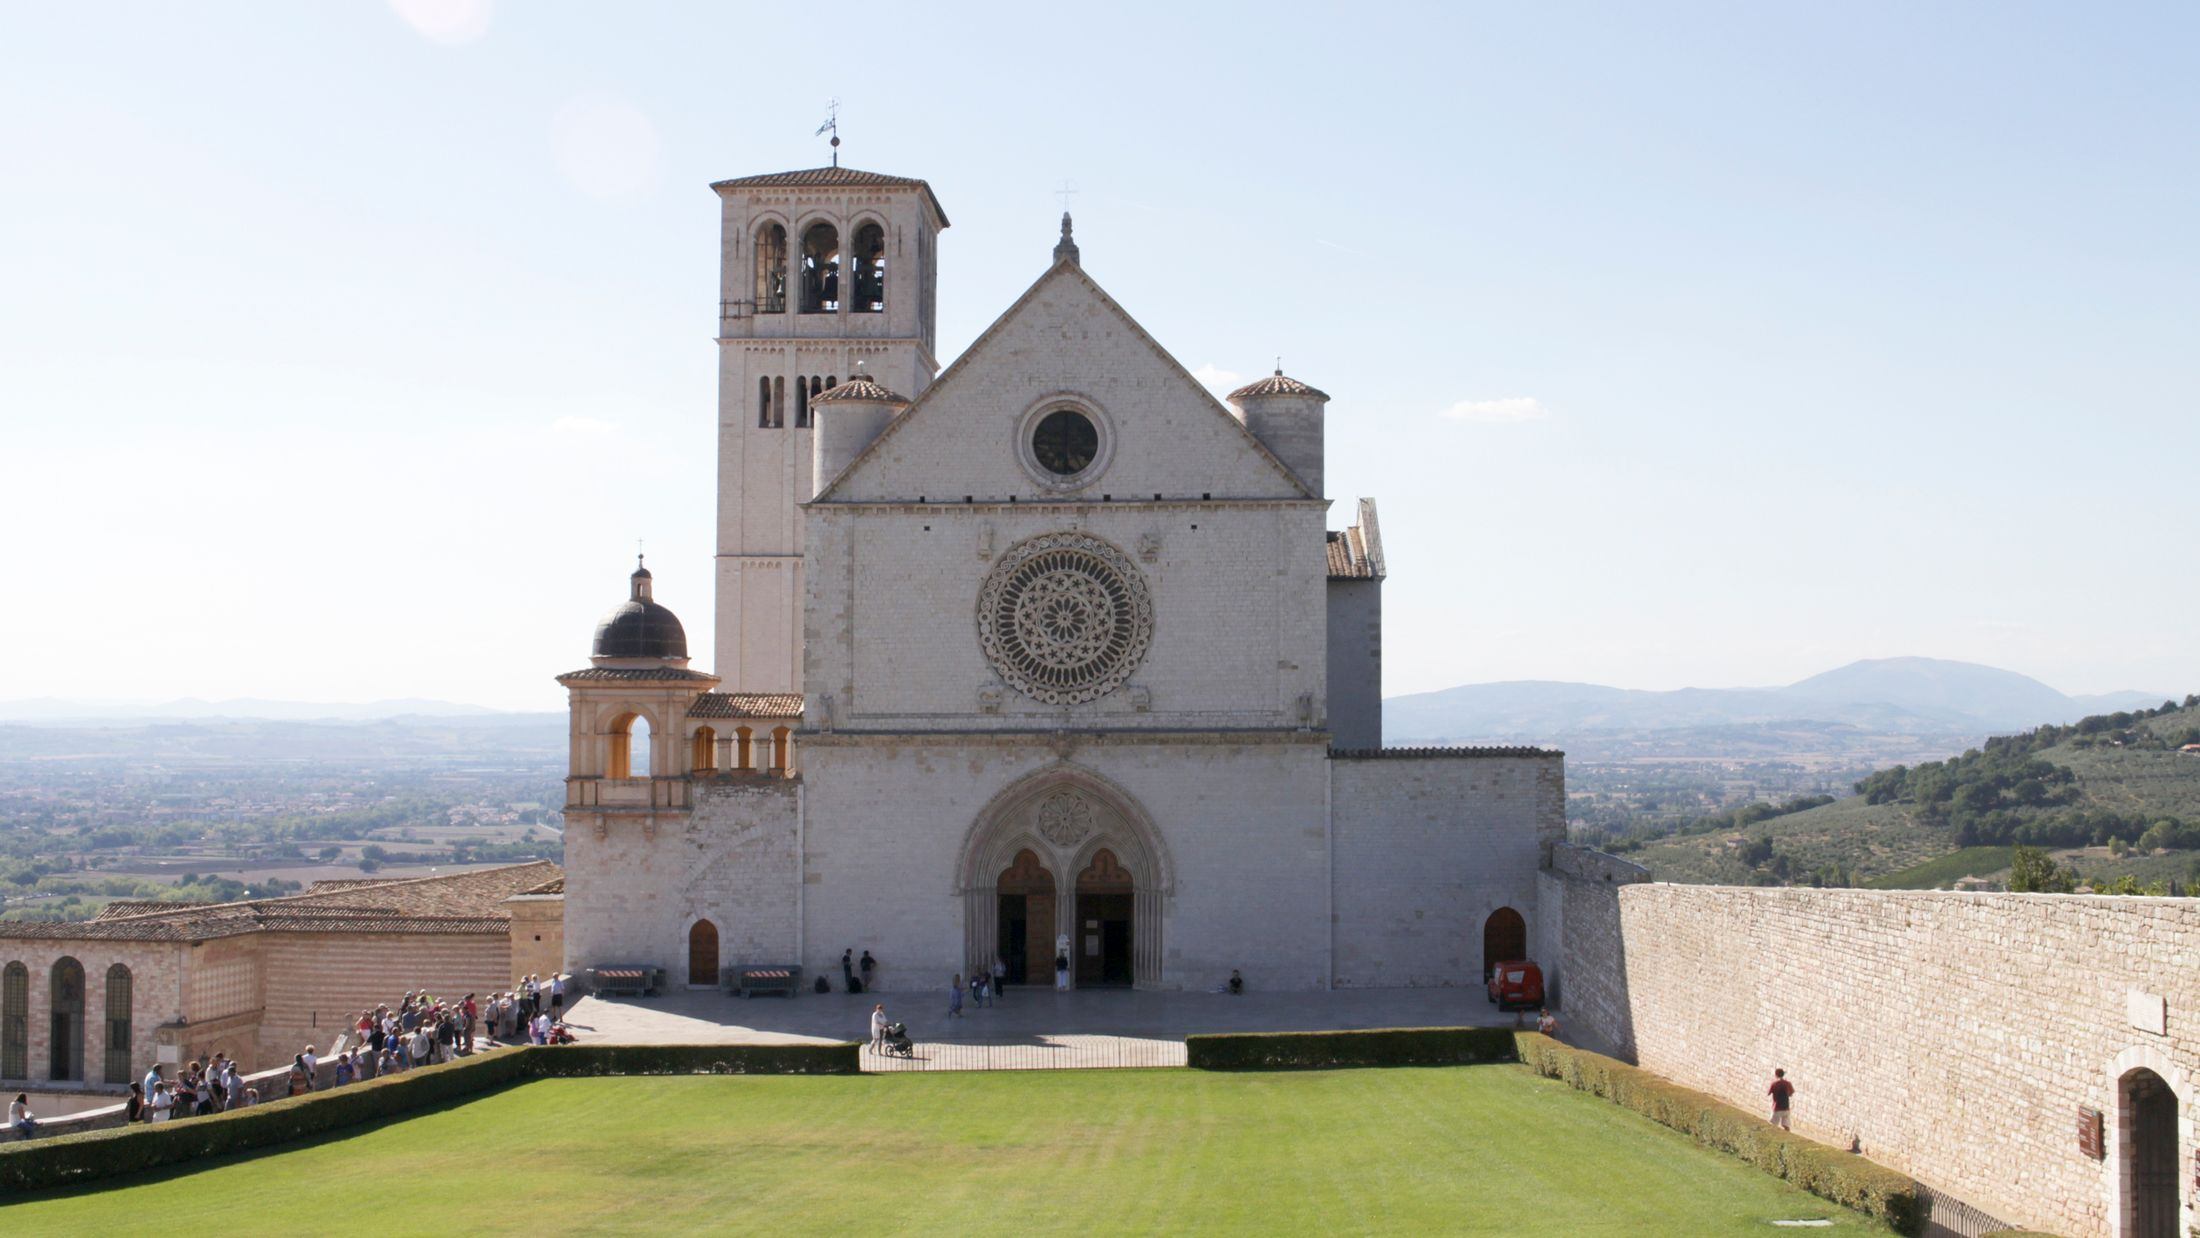 002451_Basilica of San Francesco d Assisi_Umbria_Italy_006_Rob Kearsey_No model release.jpg-Hybris